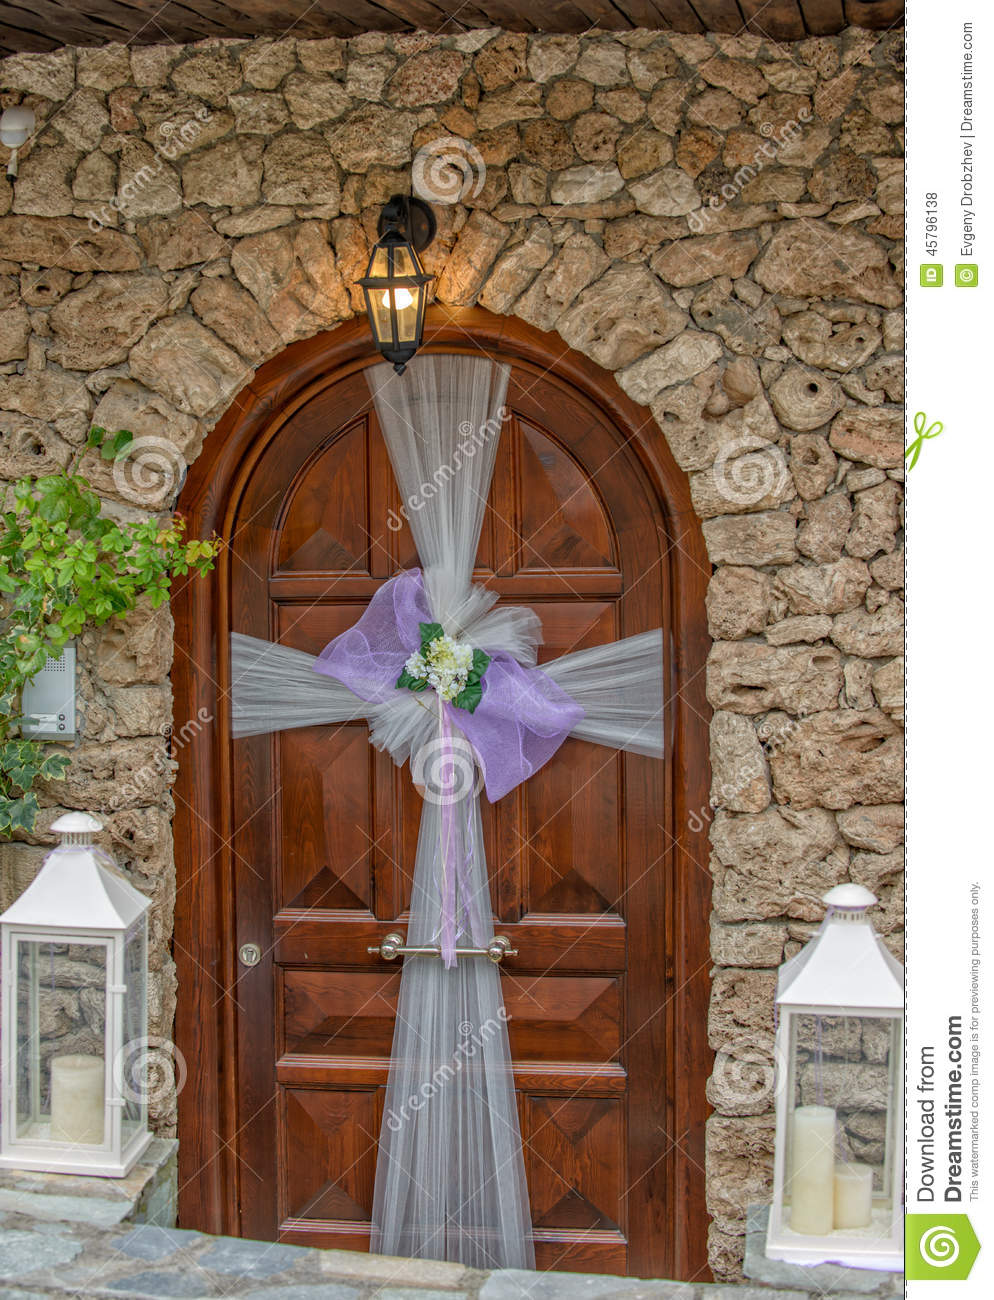 Porte avec la d coration de mariage photo stock image - Decoration de porte ...